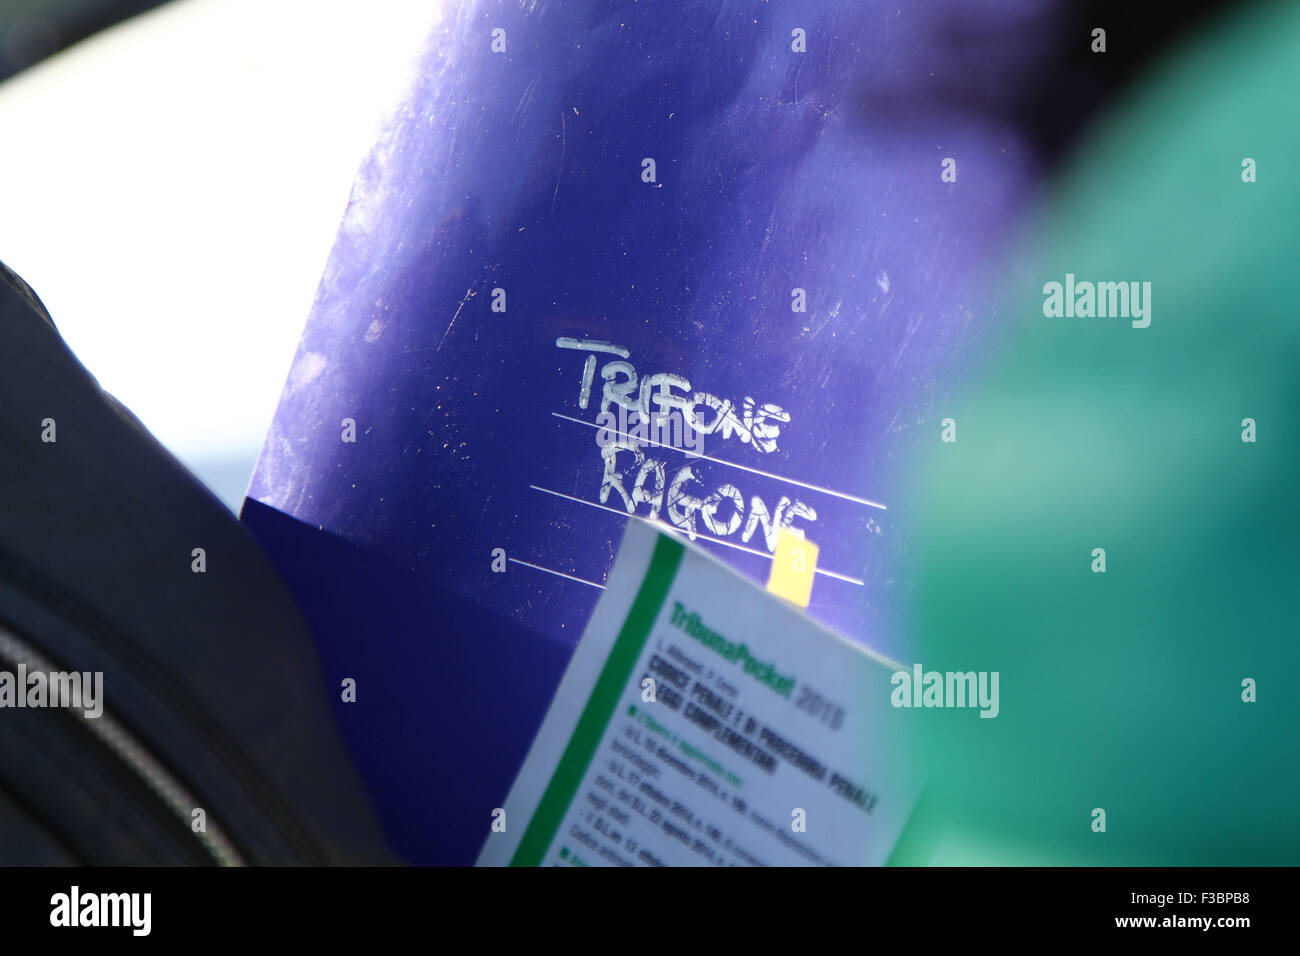 ITALY, Pordenone: Trifone Ragone dossier in the hands of lawyer during the case Double murder Trifone Ragone and - Stock Image